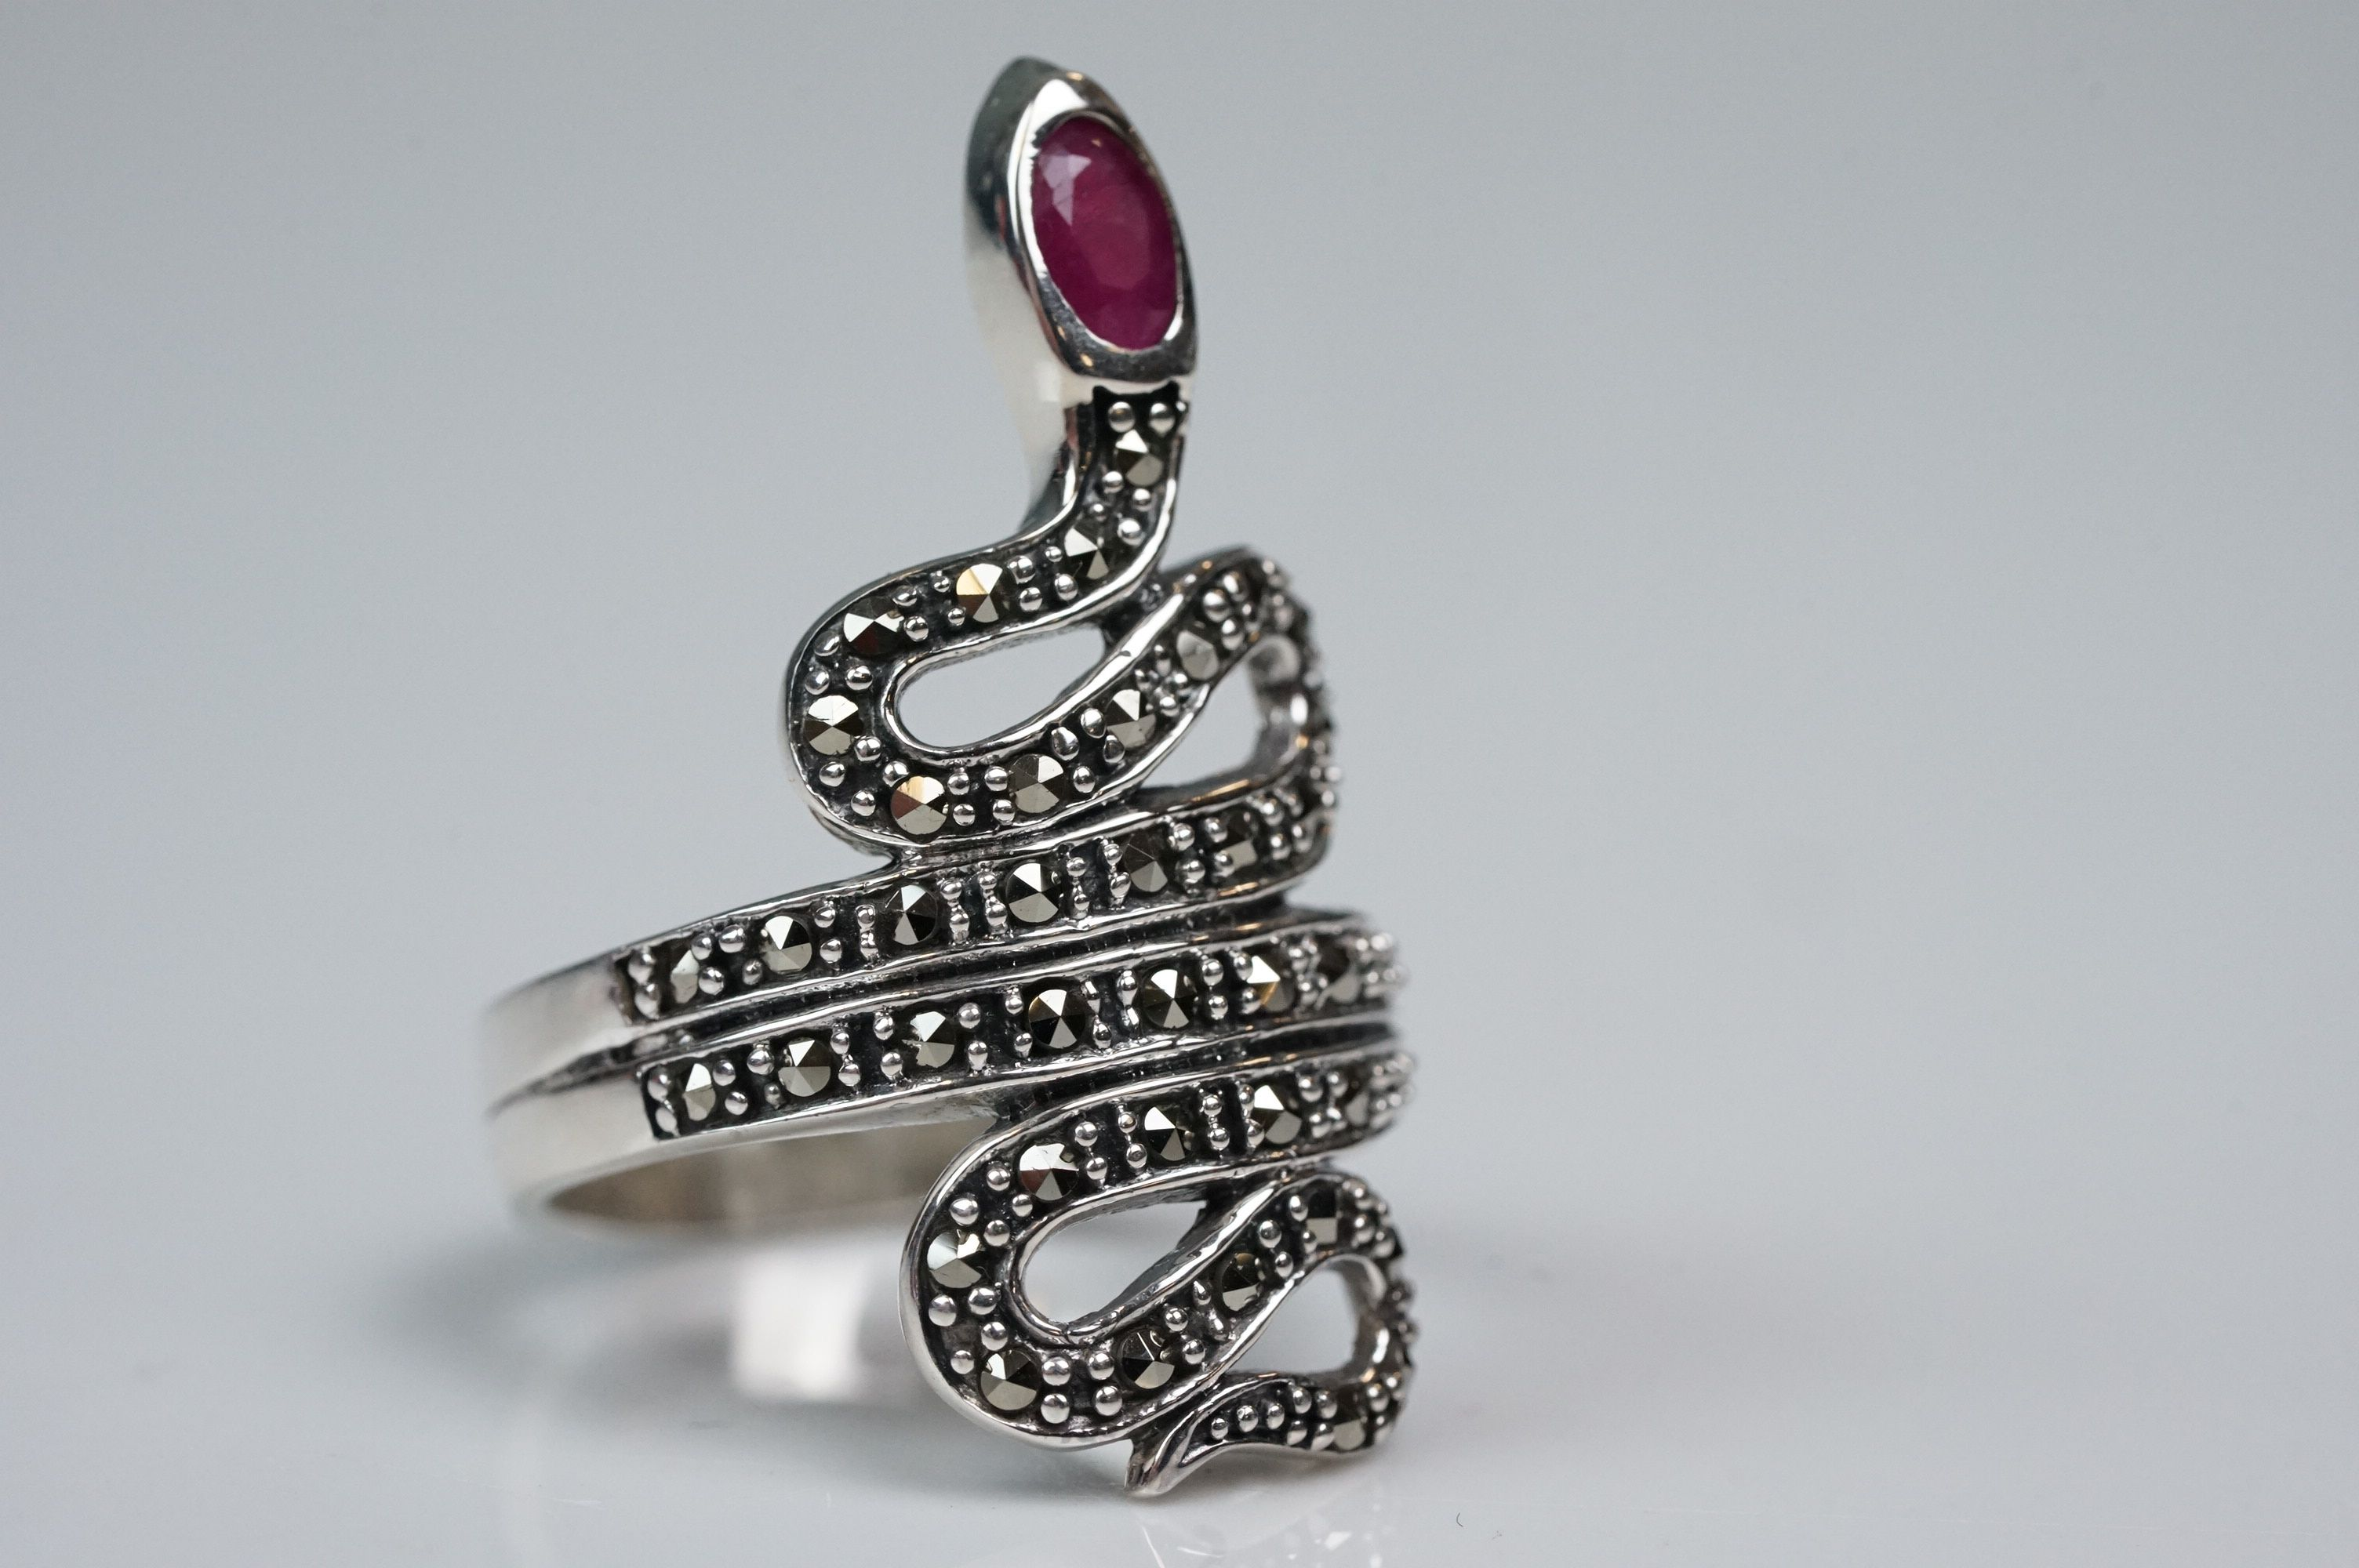 Silver dress ring in the form of a snake, set with marcasites and ruby - Image 4 of 5